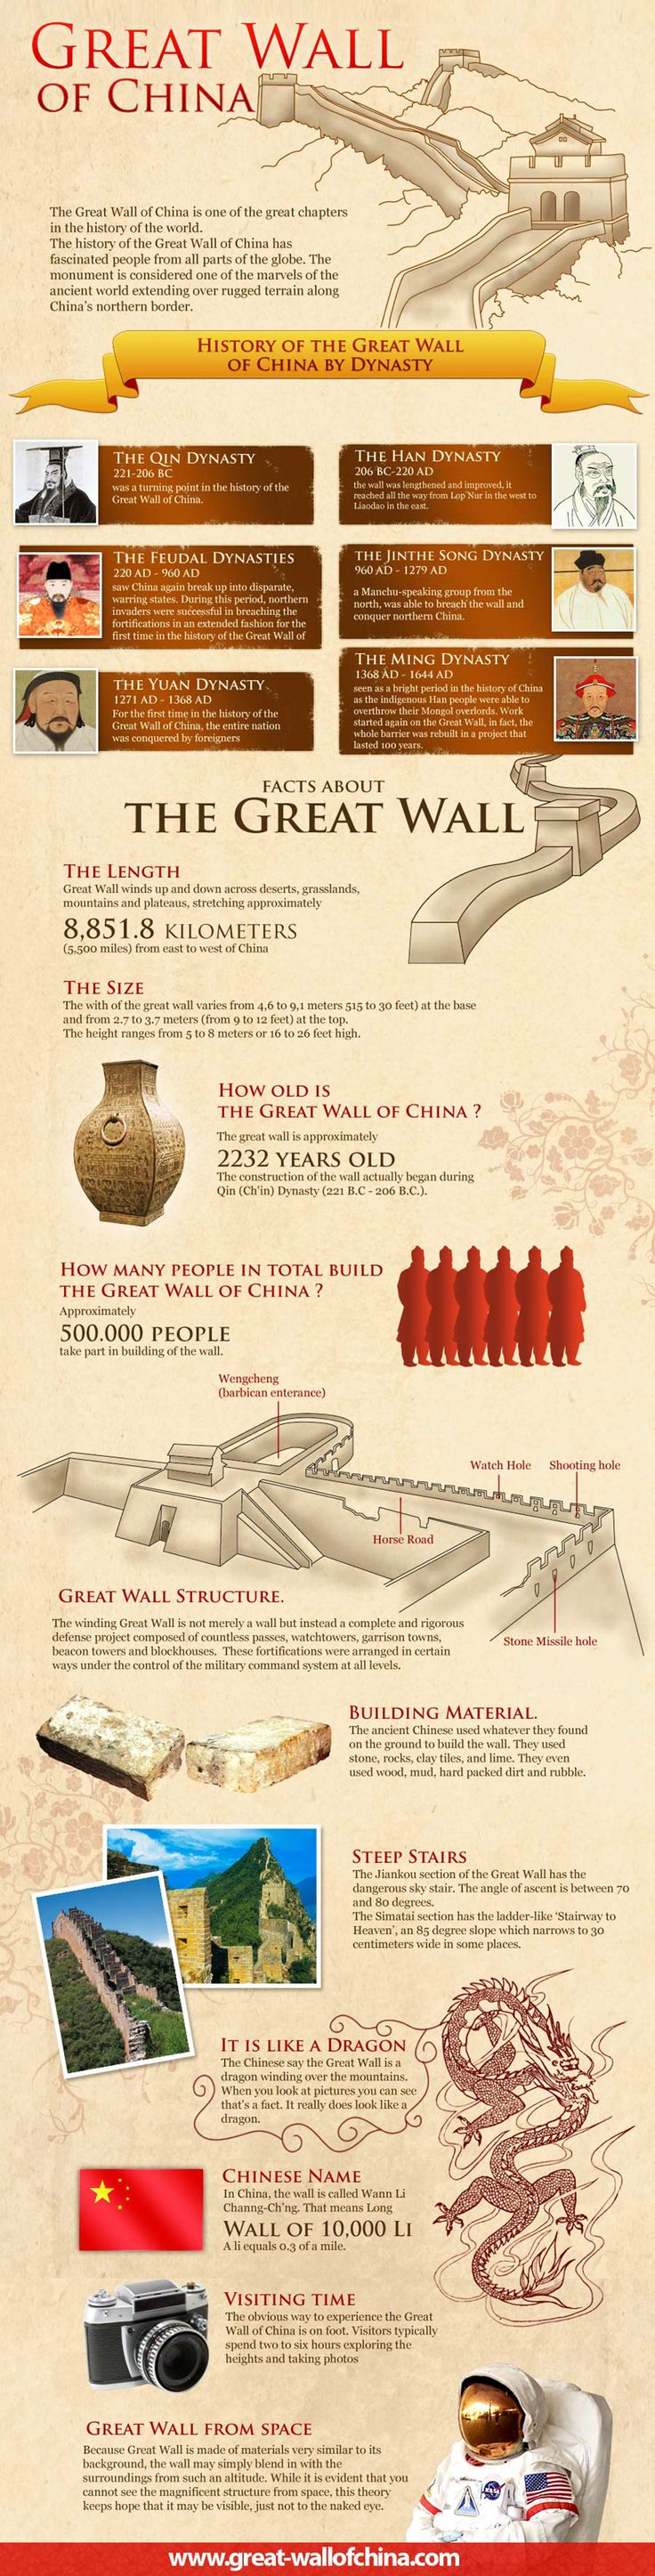 History Of The Great Wall Of China  Historygraphic Topic: Travel,  Chinese